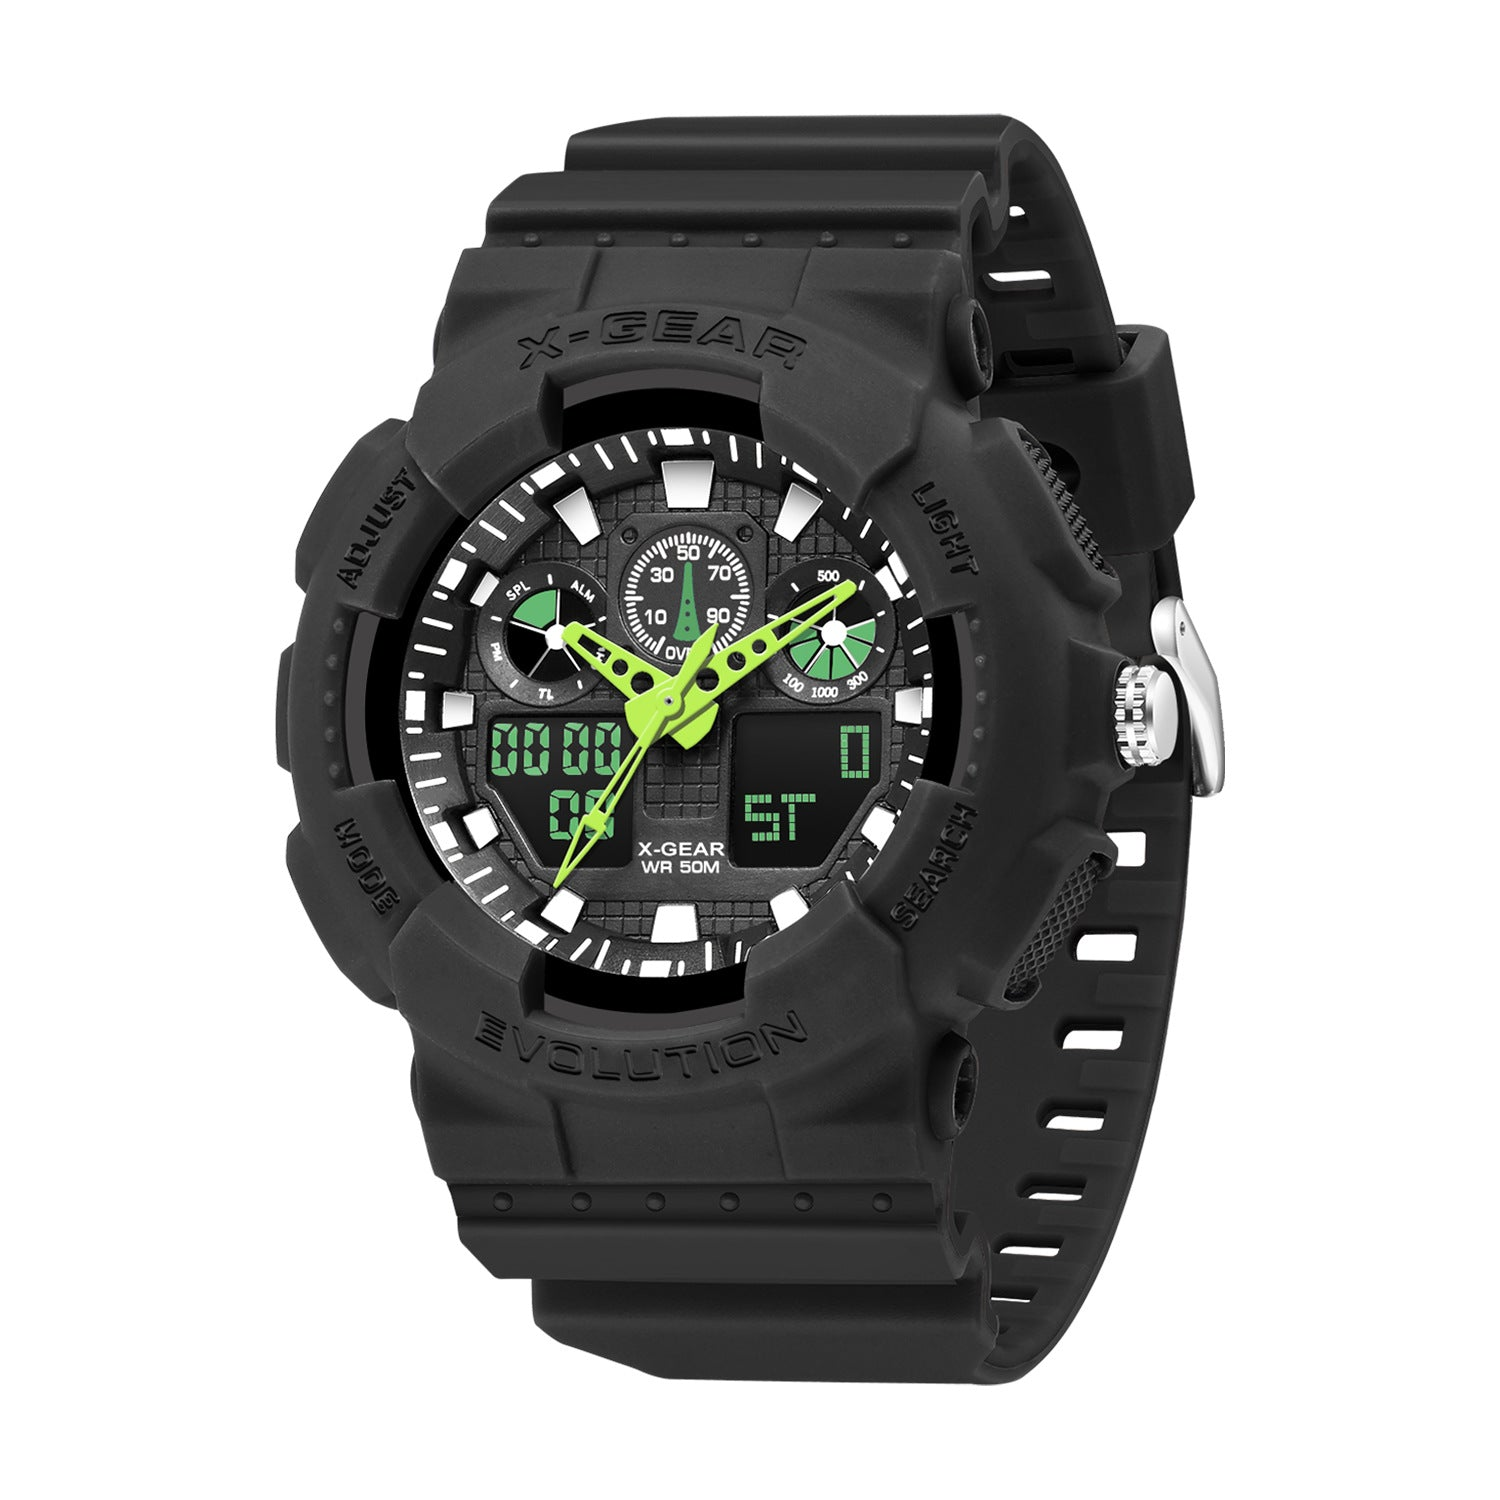 X-GEAR Men's Automatic Luminous Waterproof Electronic Watch Personality Outdoor Multifunctional Male Student Watch